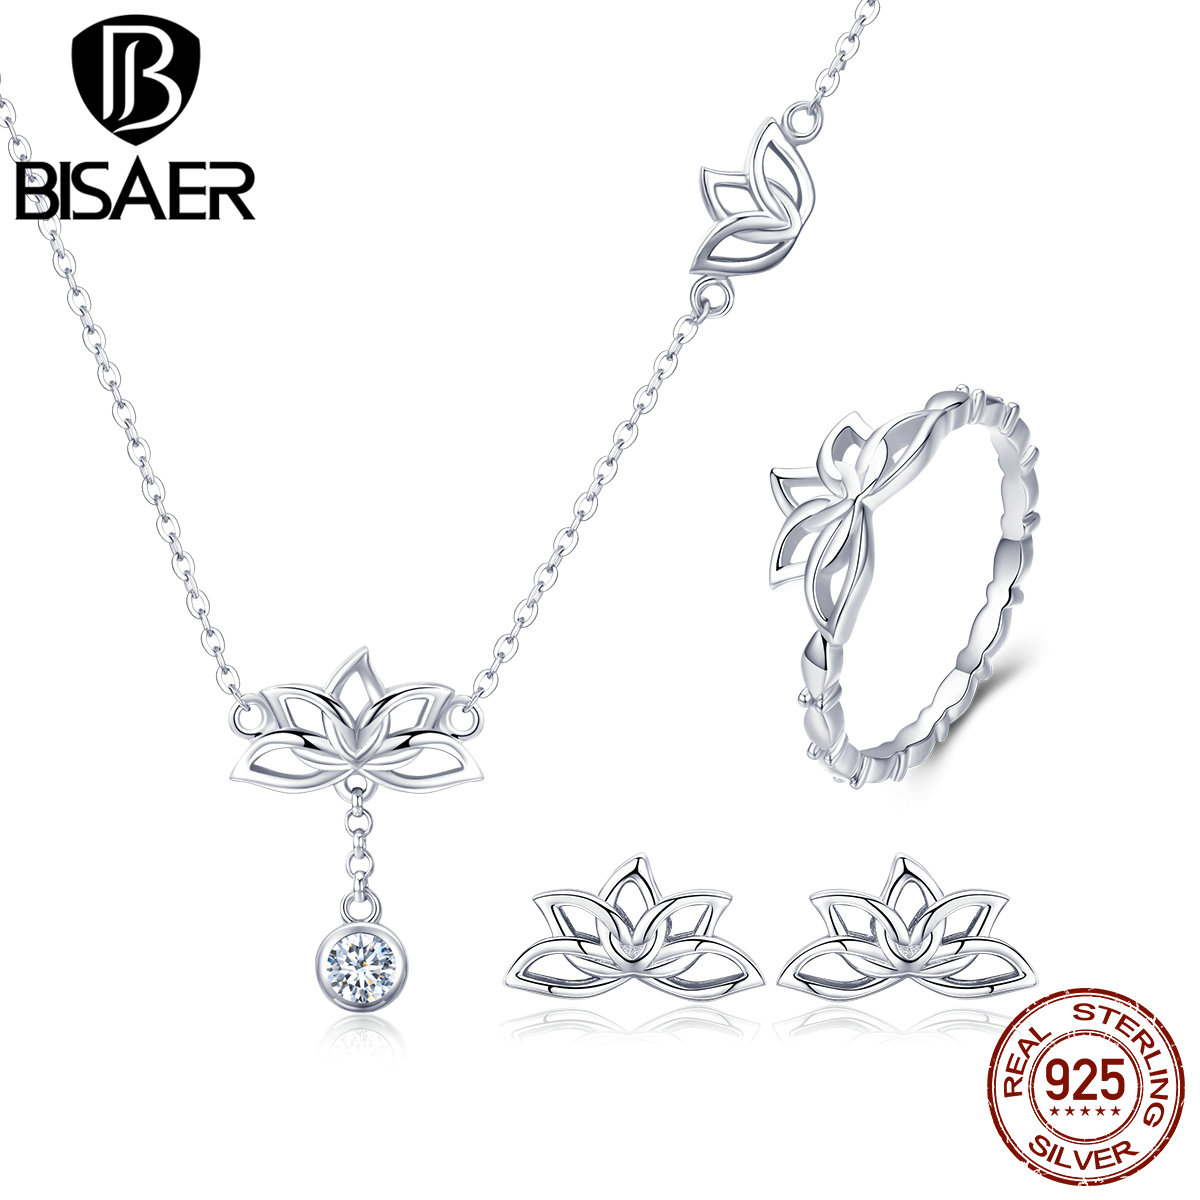 BISAER 925 Sterling Silver Lotus Flower Stud Earrings Rings Necklace Jewelry Sets for Women Elegant Valentine Gifts GUS067BISAER 925 Sterling Silver Lotus Flower Stud Earrings Rings Necklace Jewelry Sets for Women Elegant Valentine Gifts GUS067